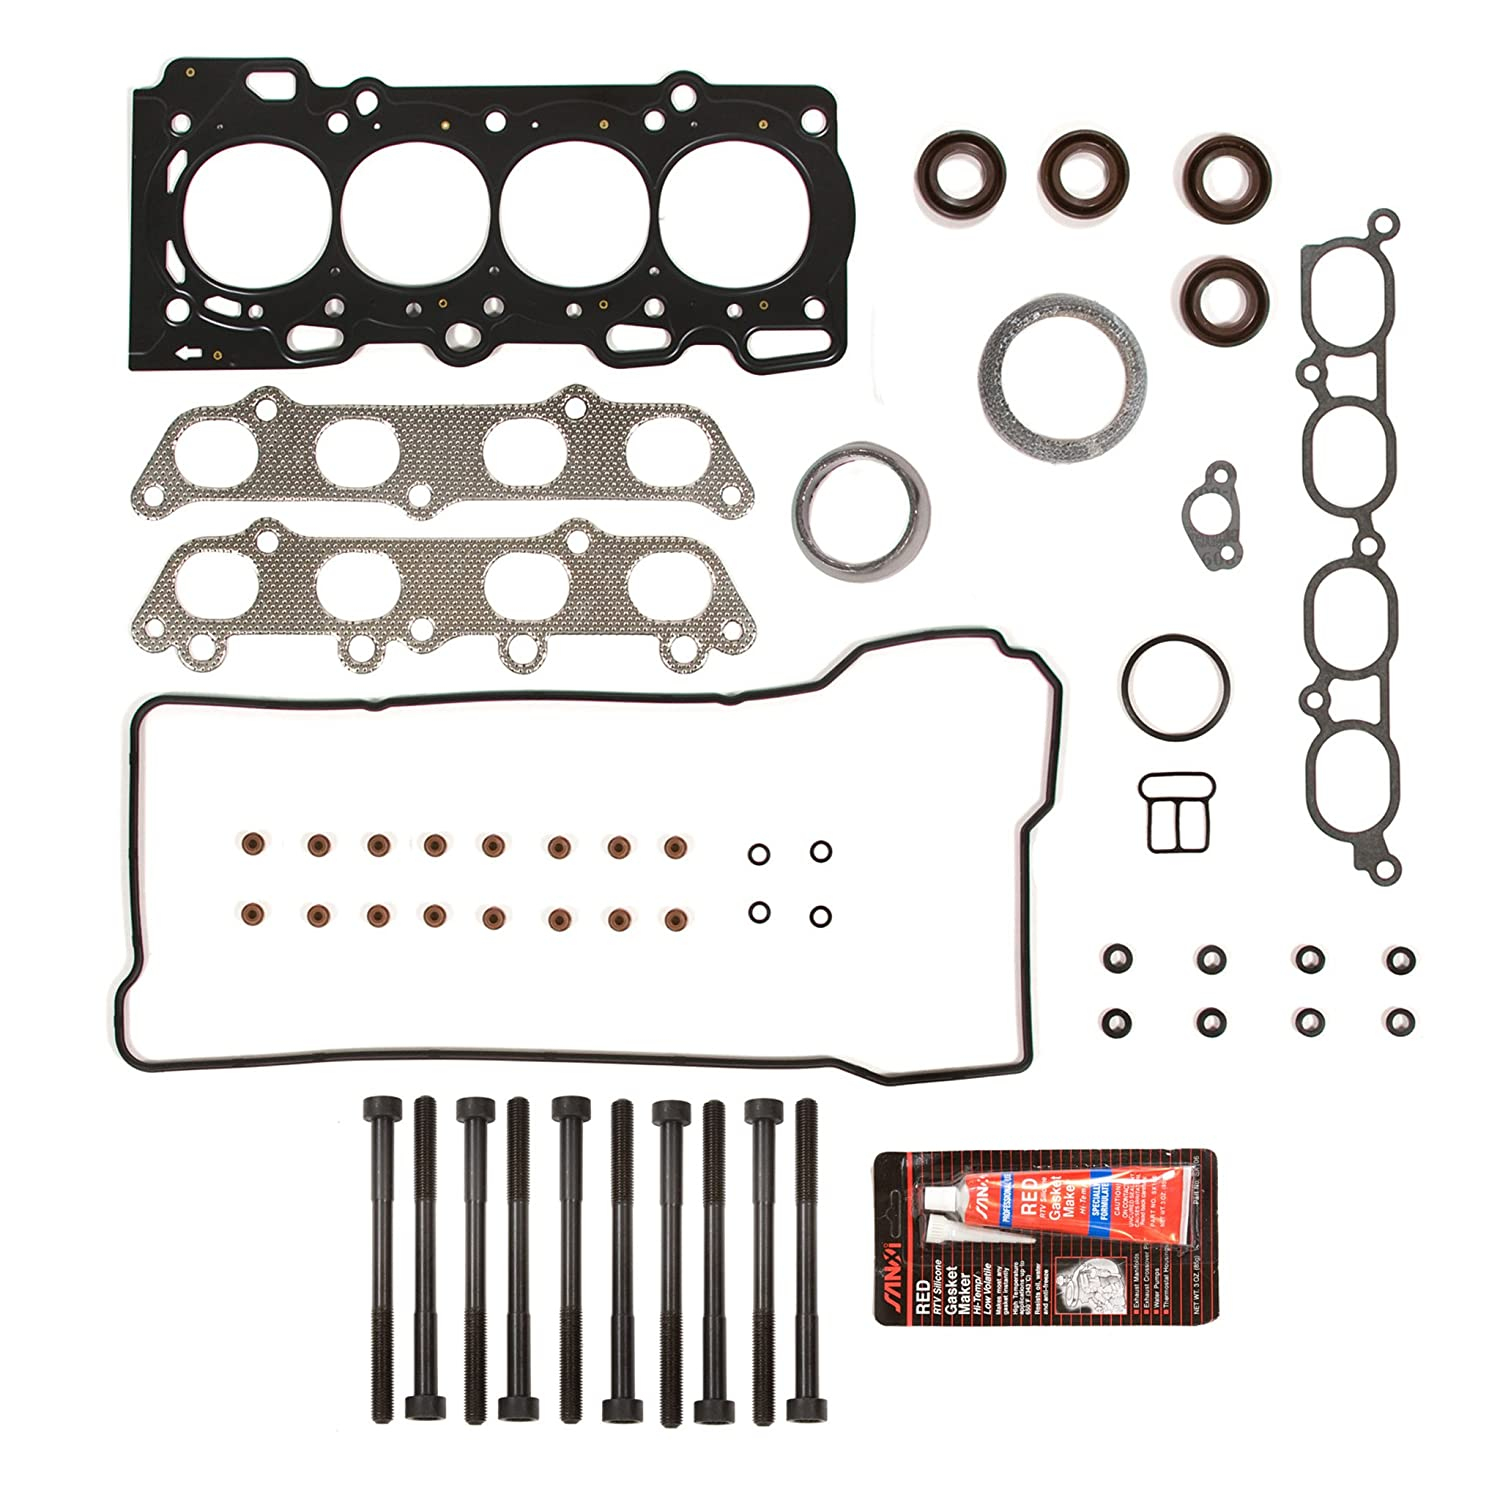 Evergreen HSHB2042 Cylinder Head Gasket Set Head Bolt